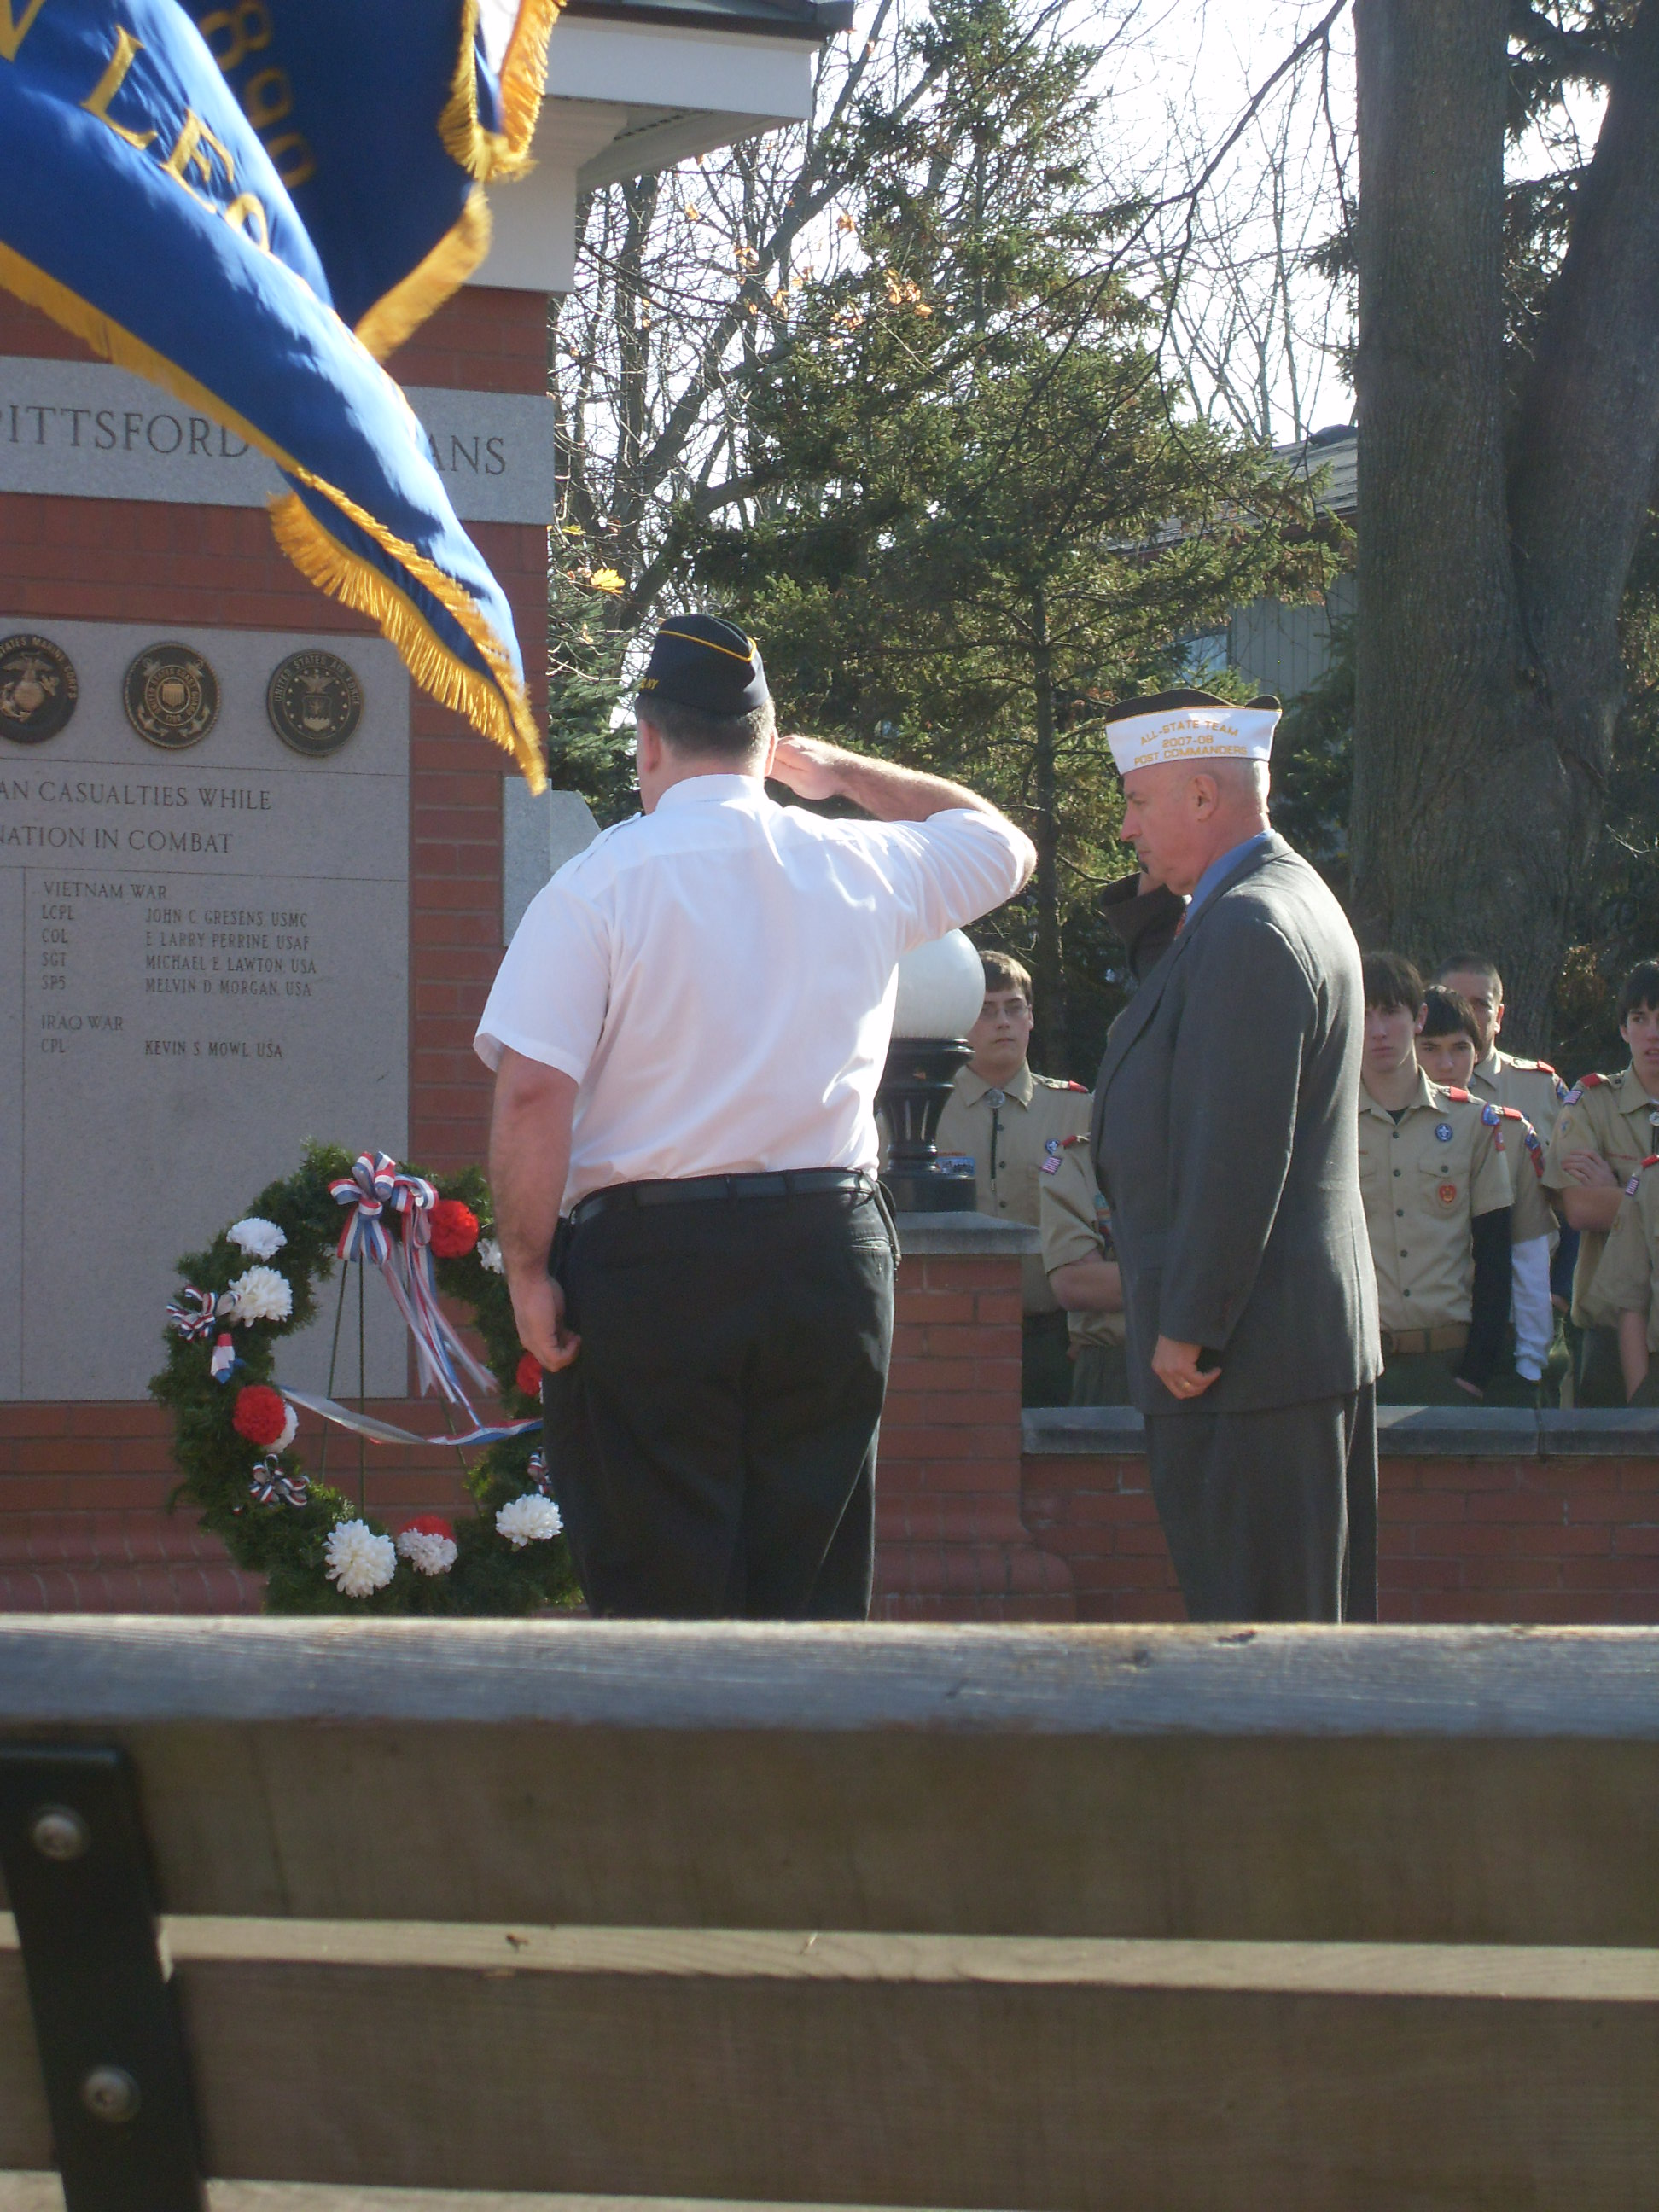 Laying the wreath at Port of Pittsford Park